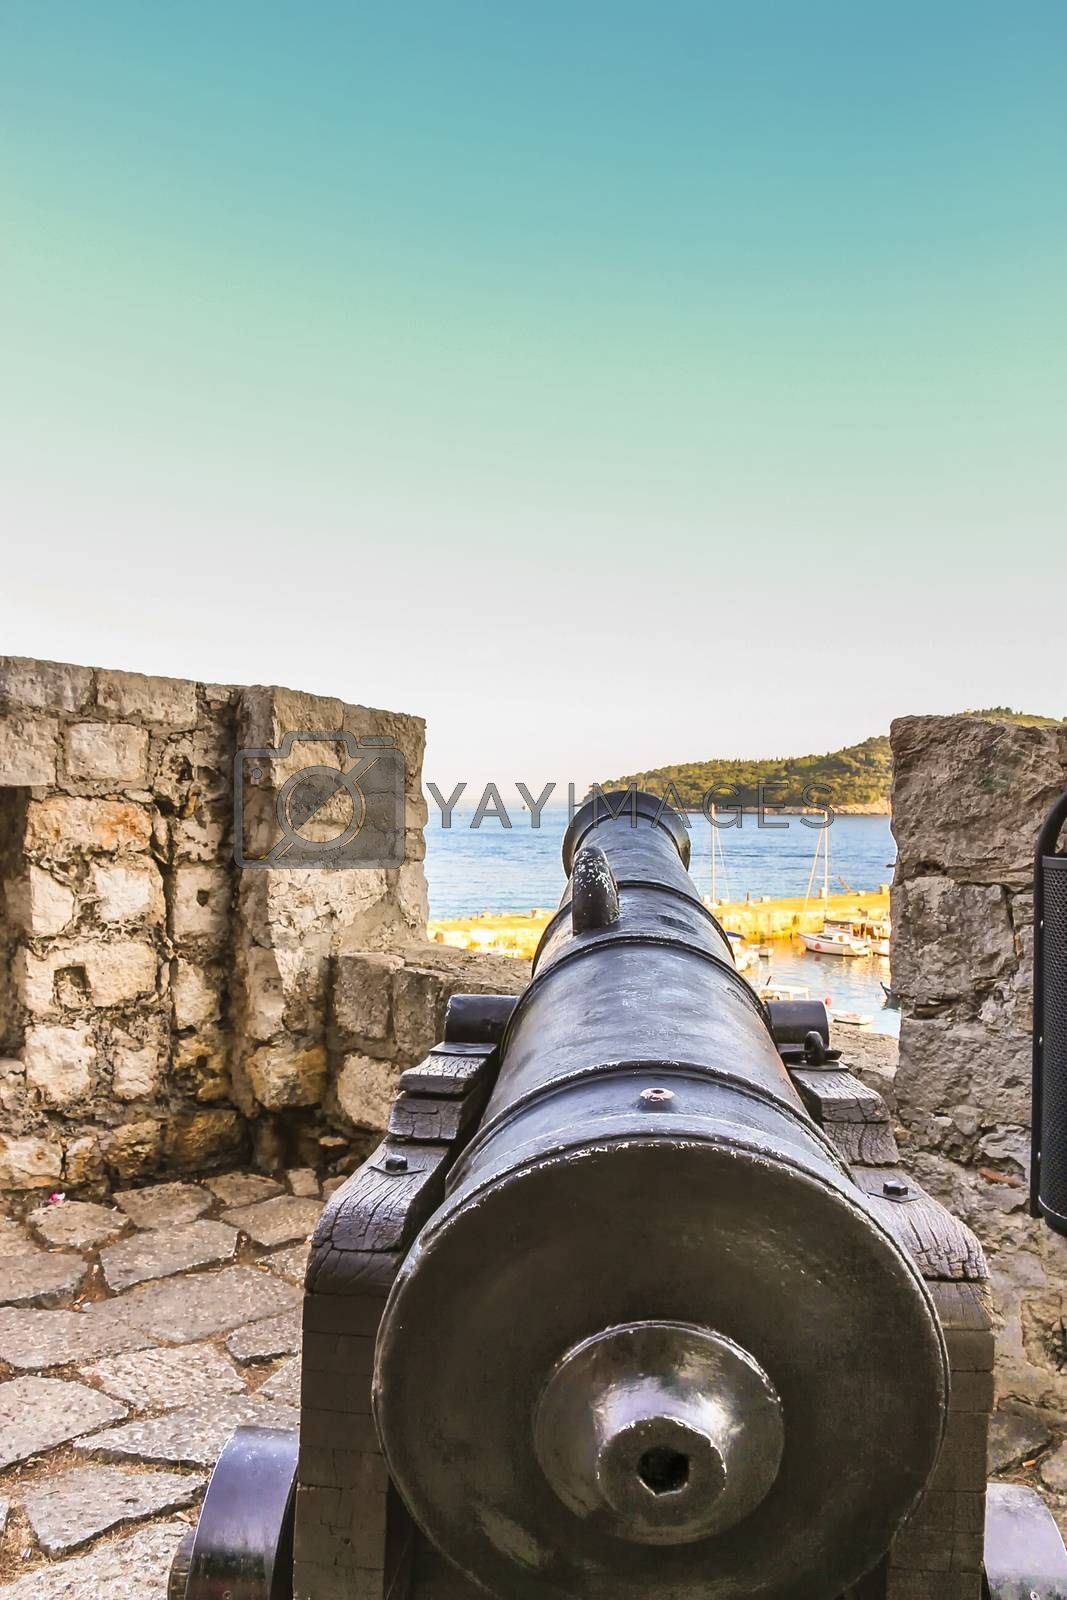 Aiming view of a cannon on the fortress of Dubrovnik City Walls with parts of Lokrum Island in the background